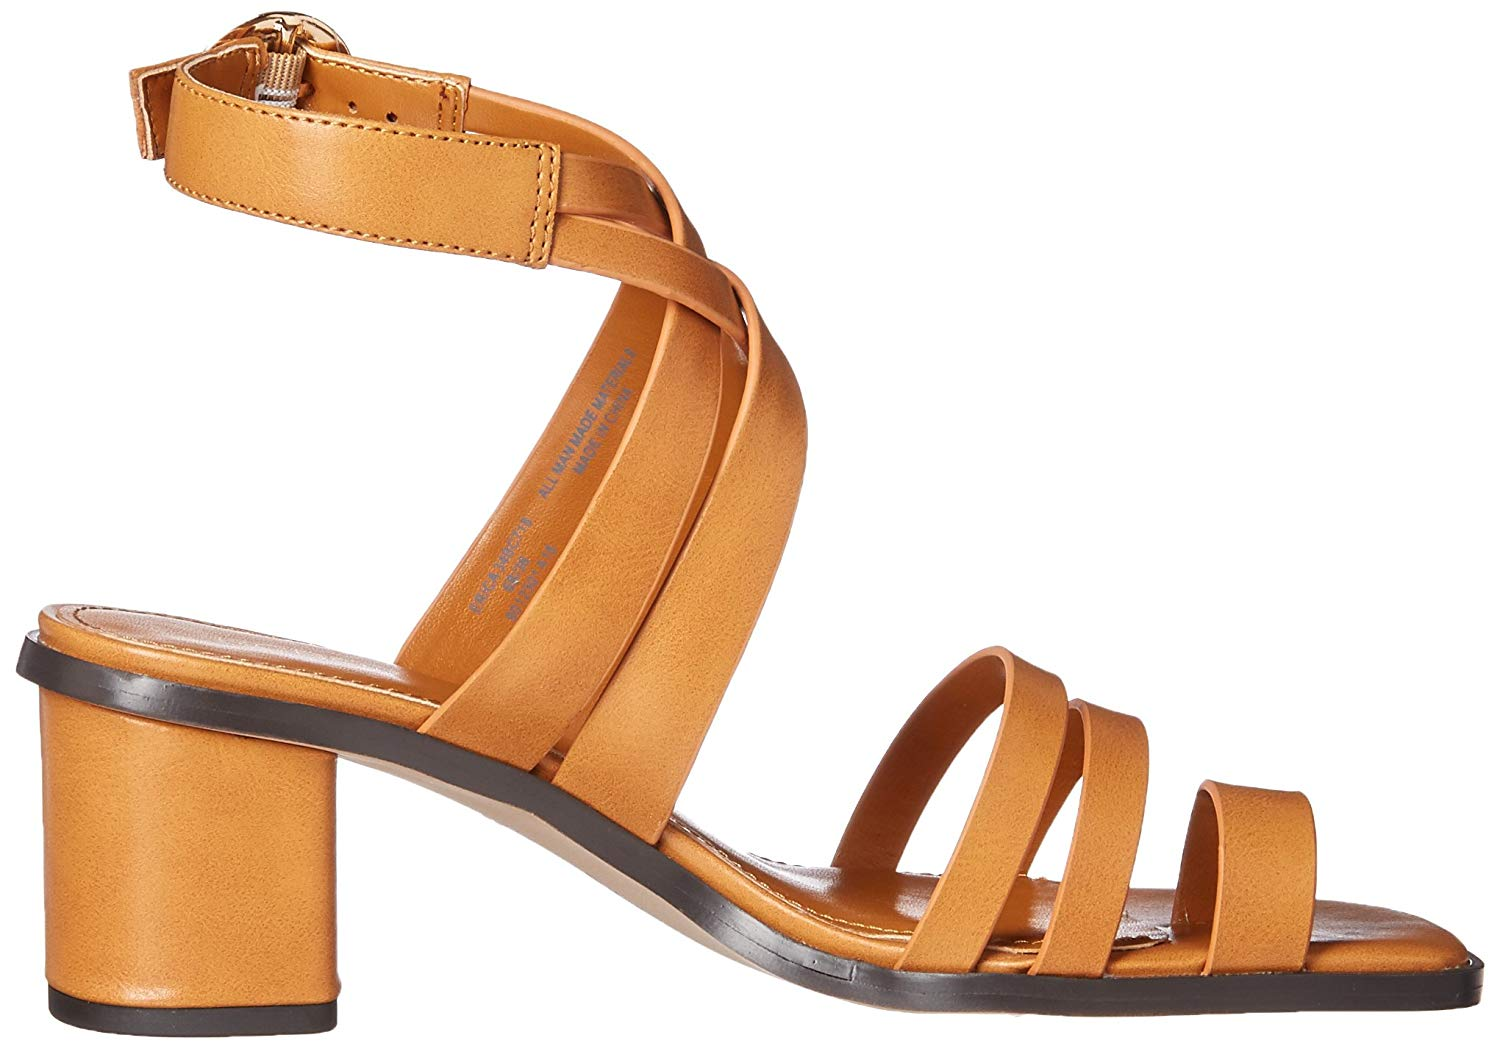 5b7a5d2c835 BCBGeneration Womens erica Open Toe Casual Ankle Strap Sandals